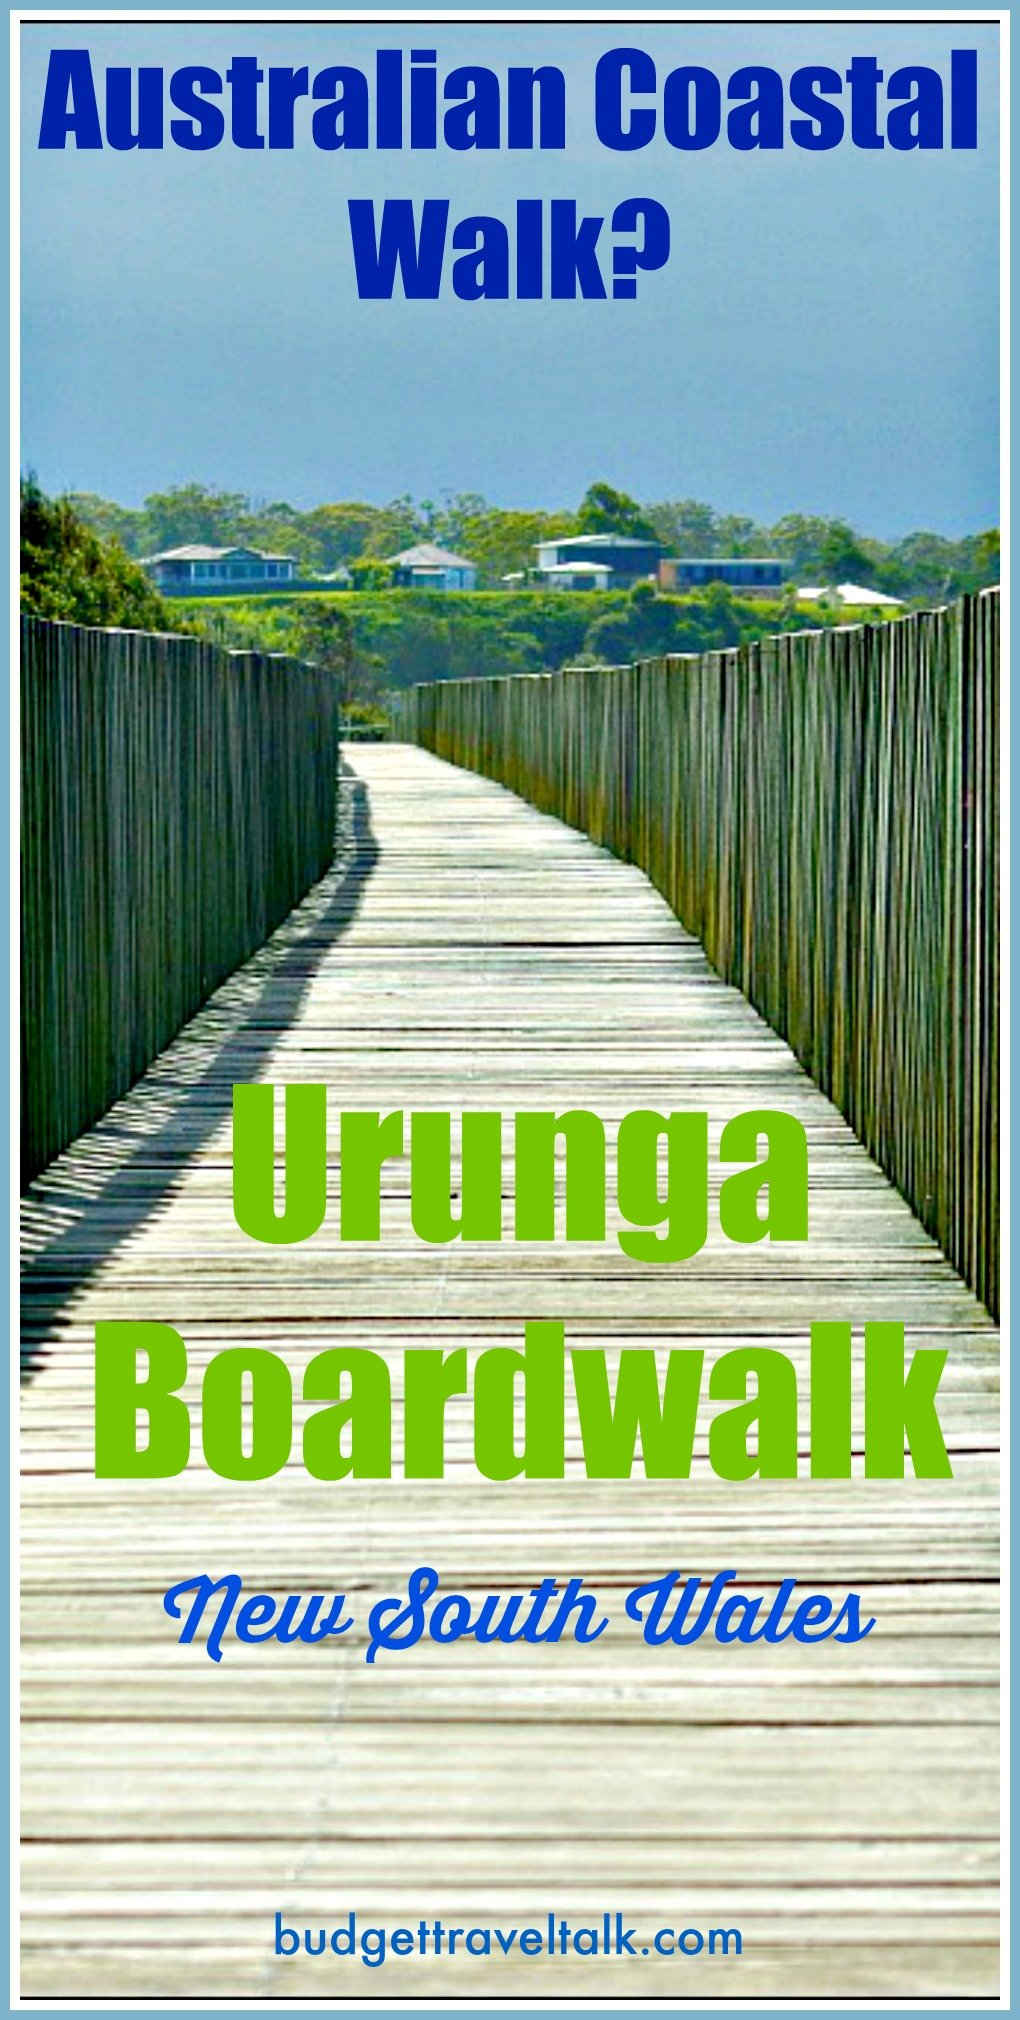 Urunga Boardwalk on the Coffs Coast of New South Wales is an old timber boardwalk that stretches 1 km from Urunga Lagoon to the Ocean